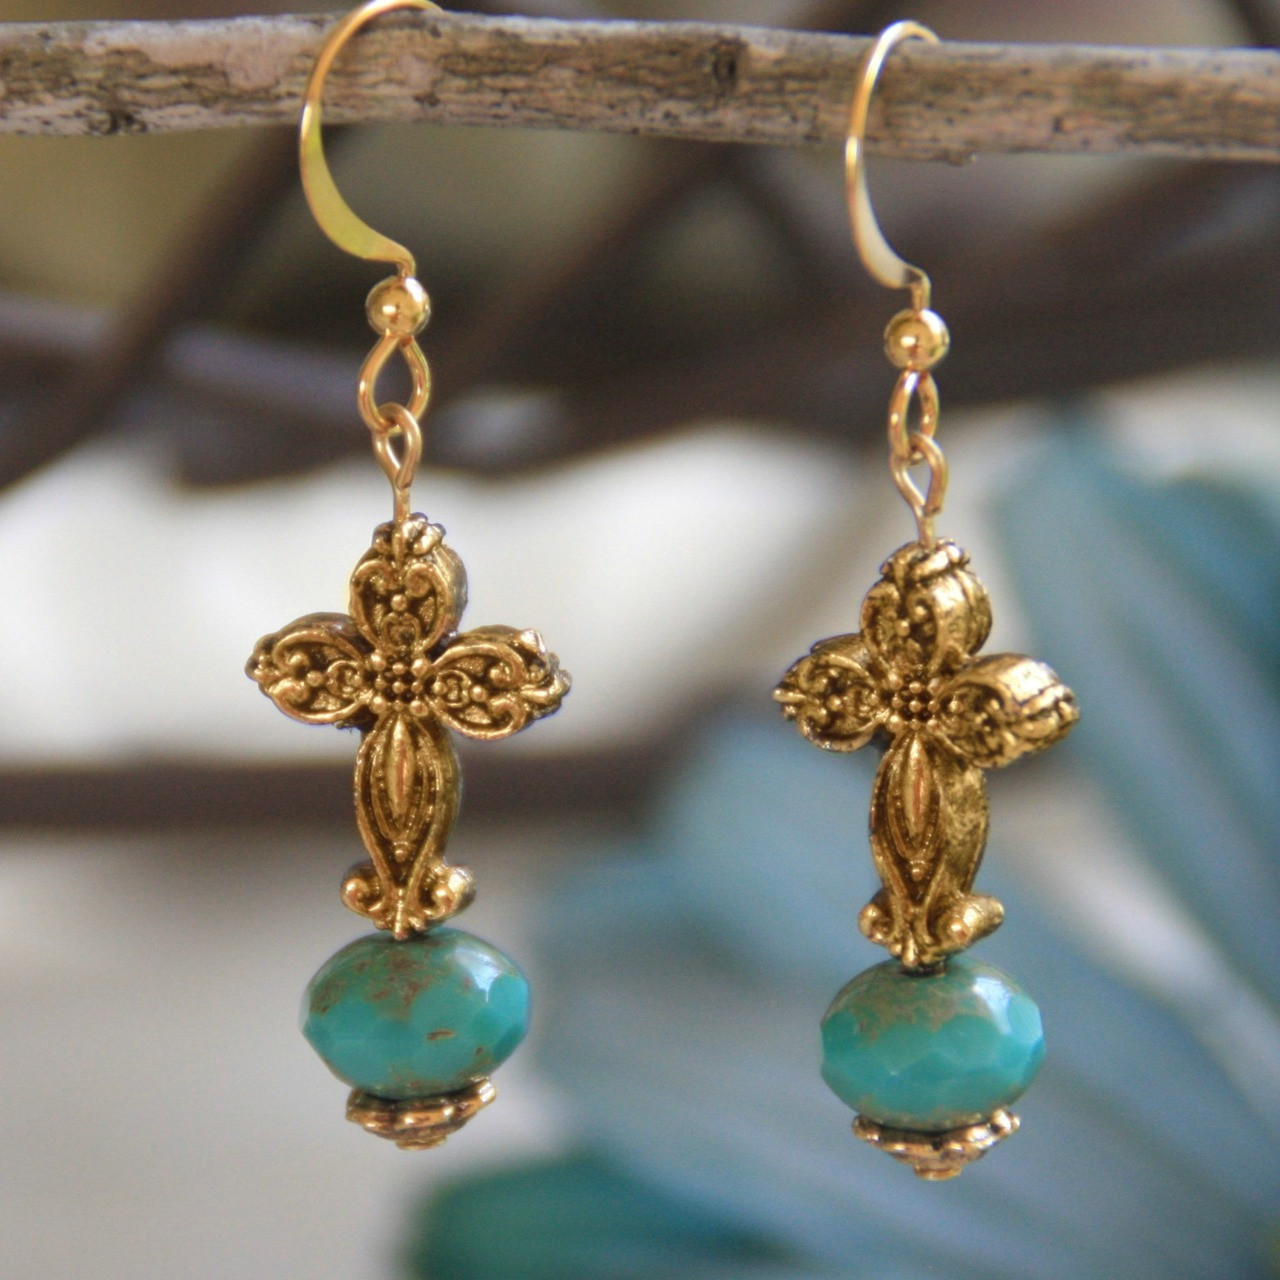 IN-707 Turquoise Glass Cross Earrings